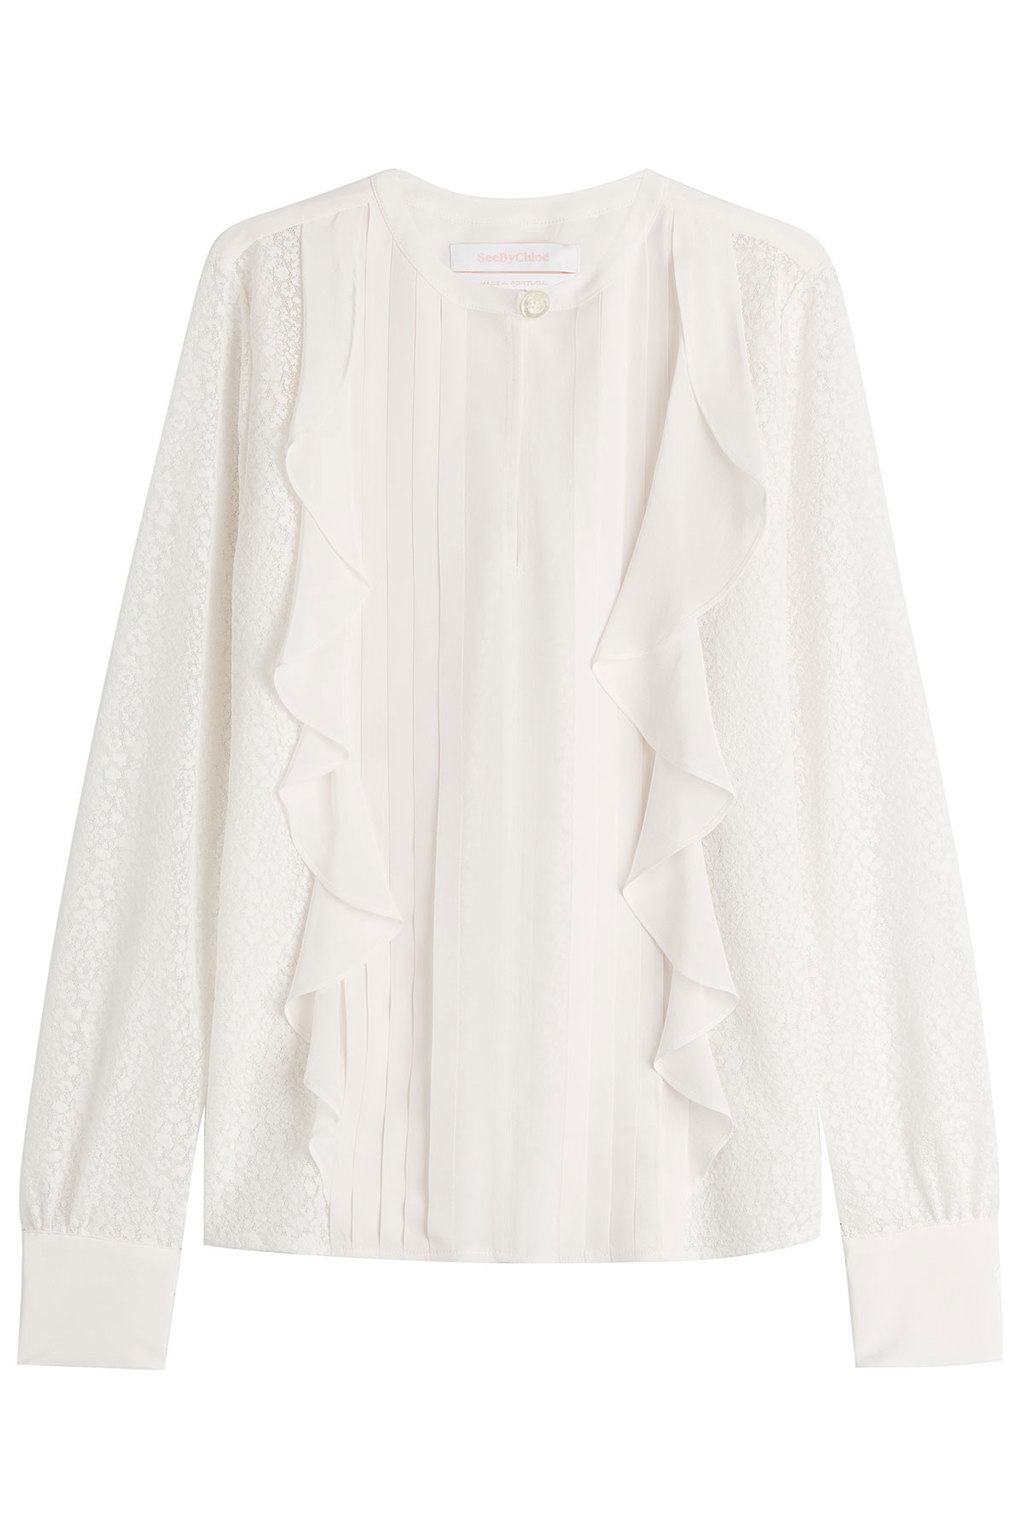 Ruffled Blouse With S Ilk White - neckline: round neck; pattern: plain; style: blouse; predominant colour: white; occasions: work, occasion; length: standard; fibres: silk - mix; fit: body skimming; sleeve length: long sleeve; sleeve style: standard; texture group: silky - light; bust detail: tiers/frills/bulky drapes/pleats; pattern type: fabric; season: s/s 2016; wardrobe: highlight